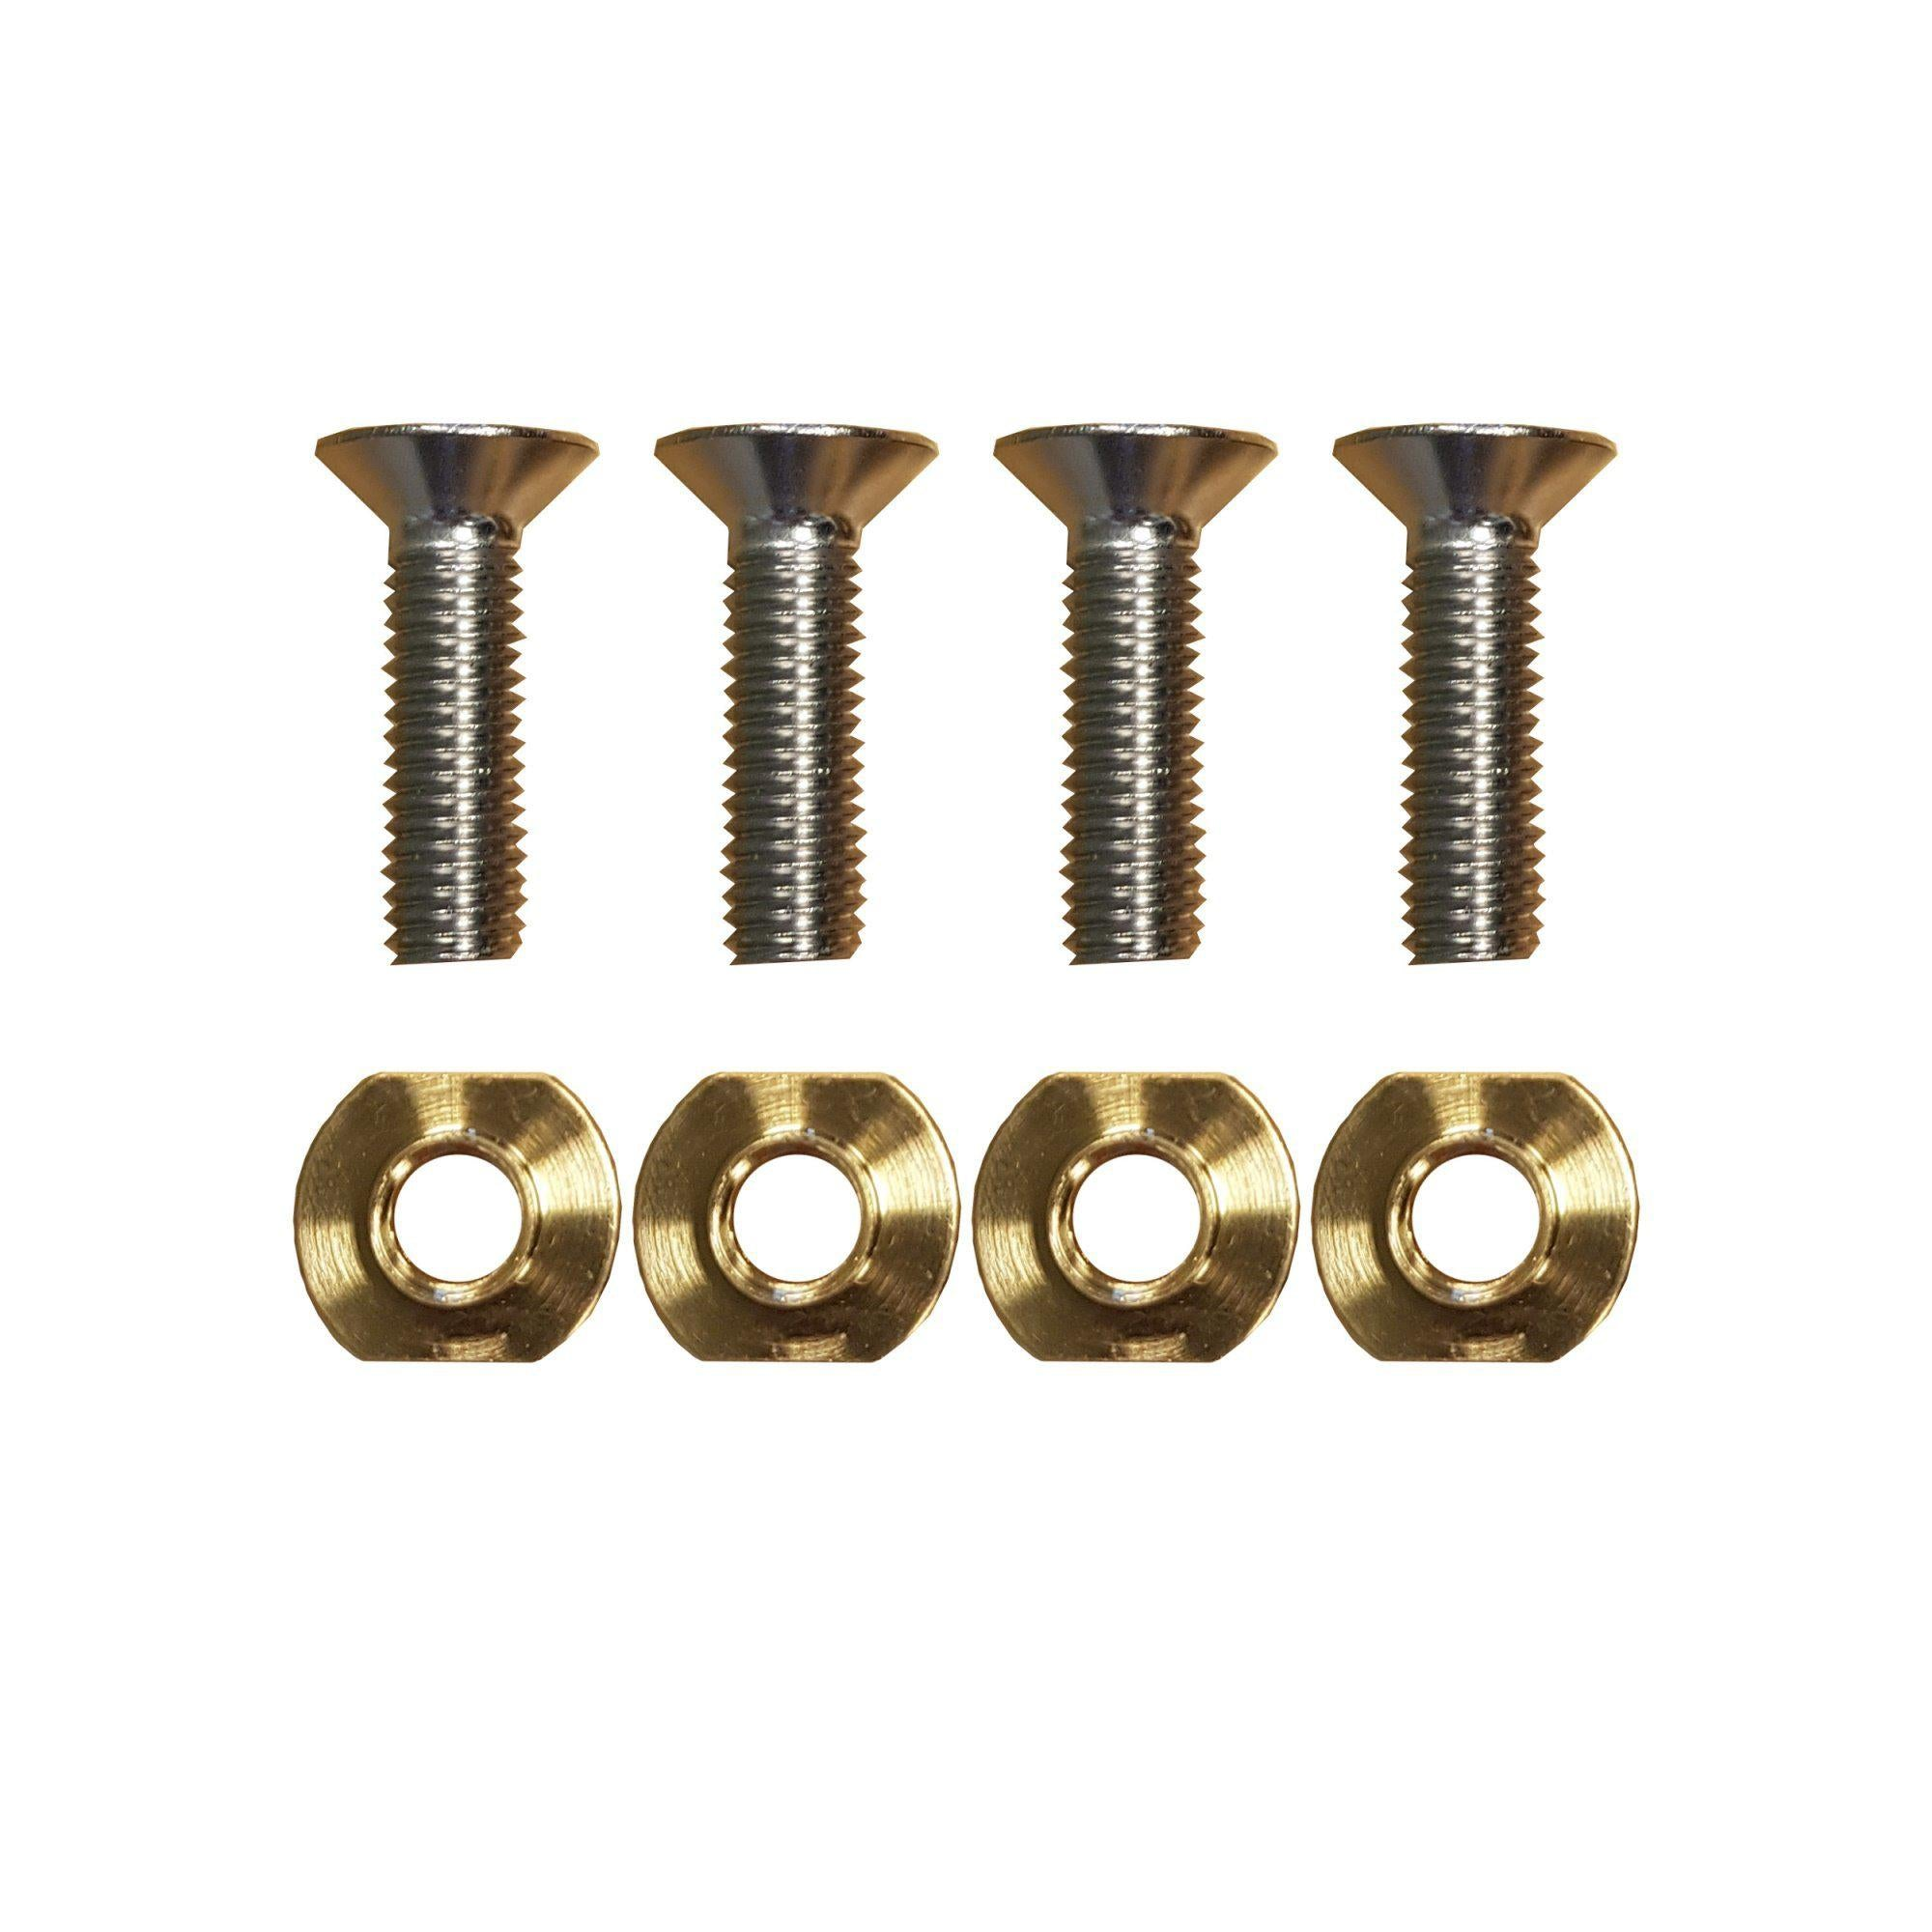 Foil Mounting System Screws & Nuts